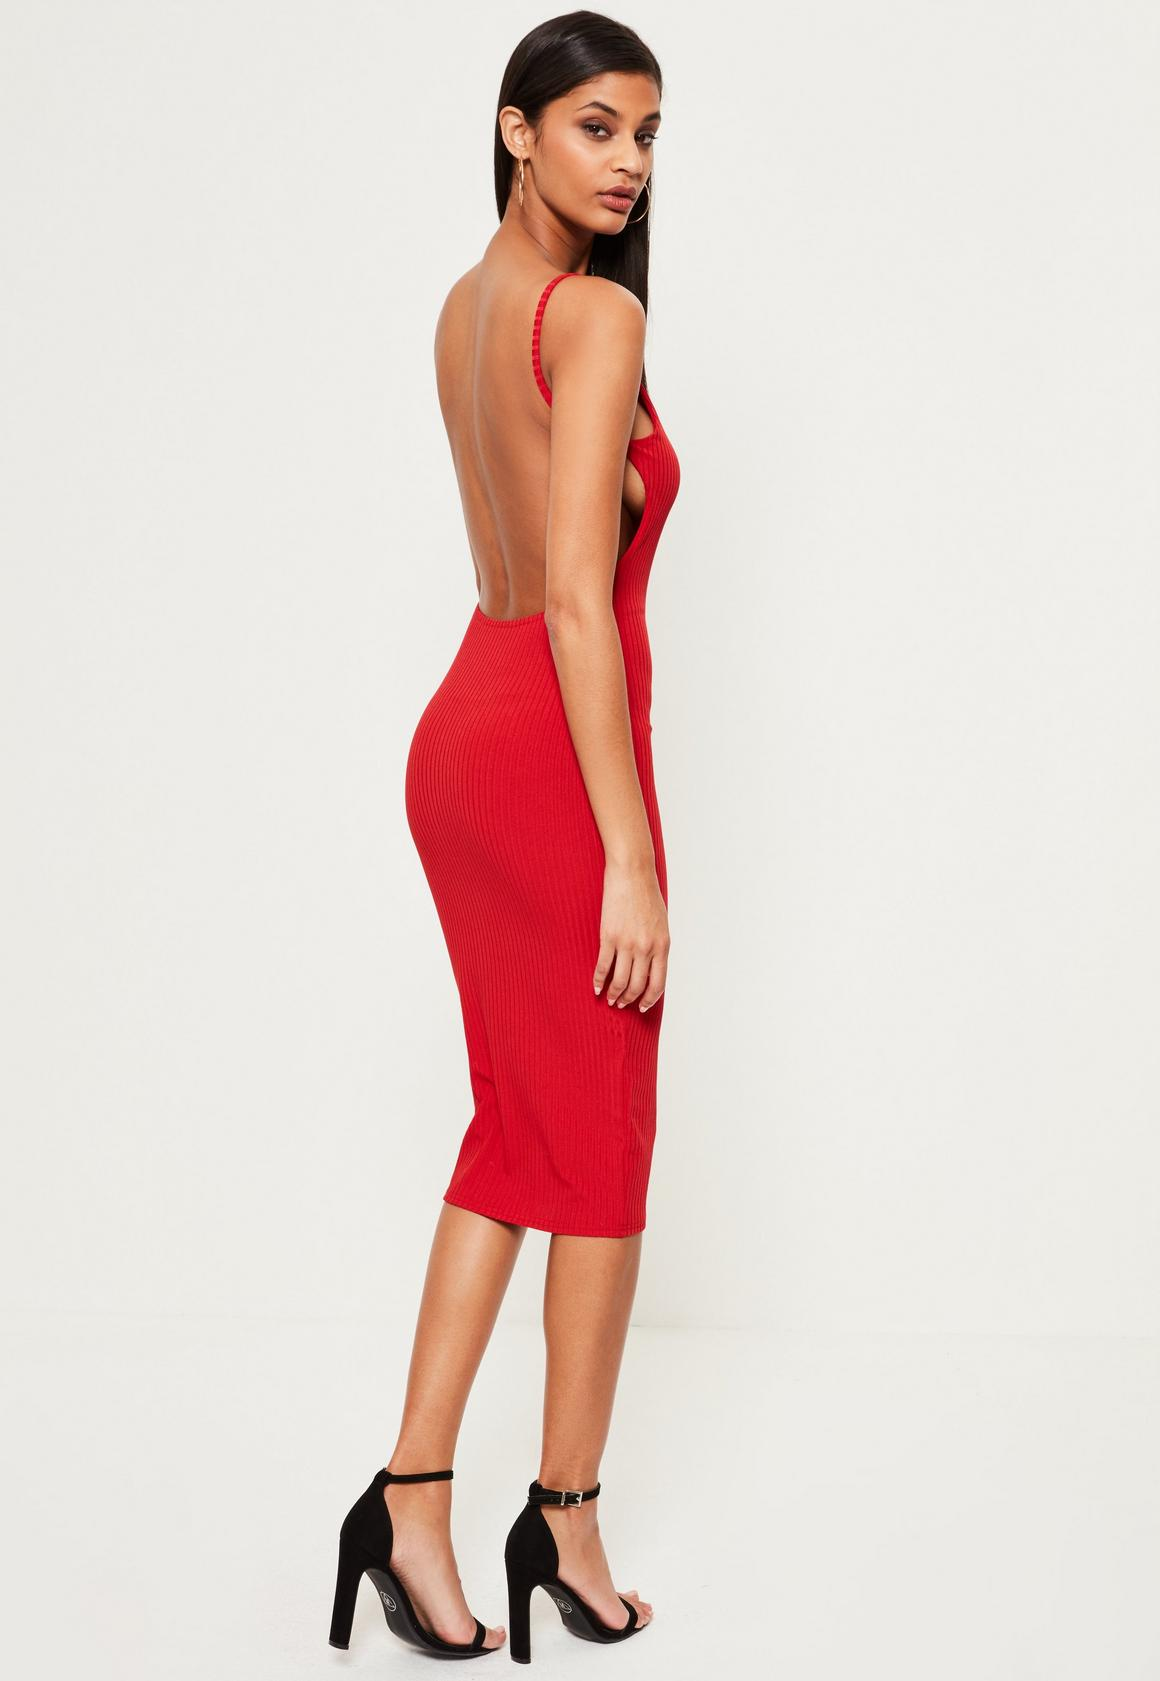 Backless Dresses | Open & Low Back Dresses - Missguided